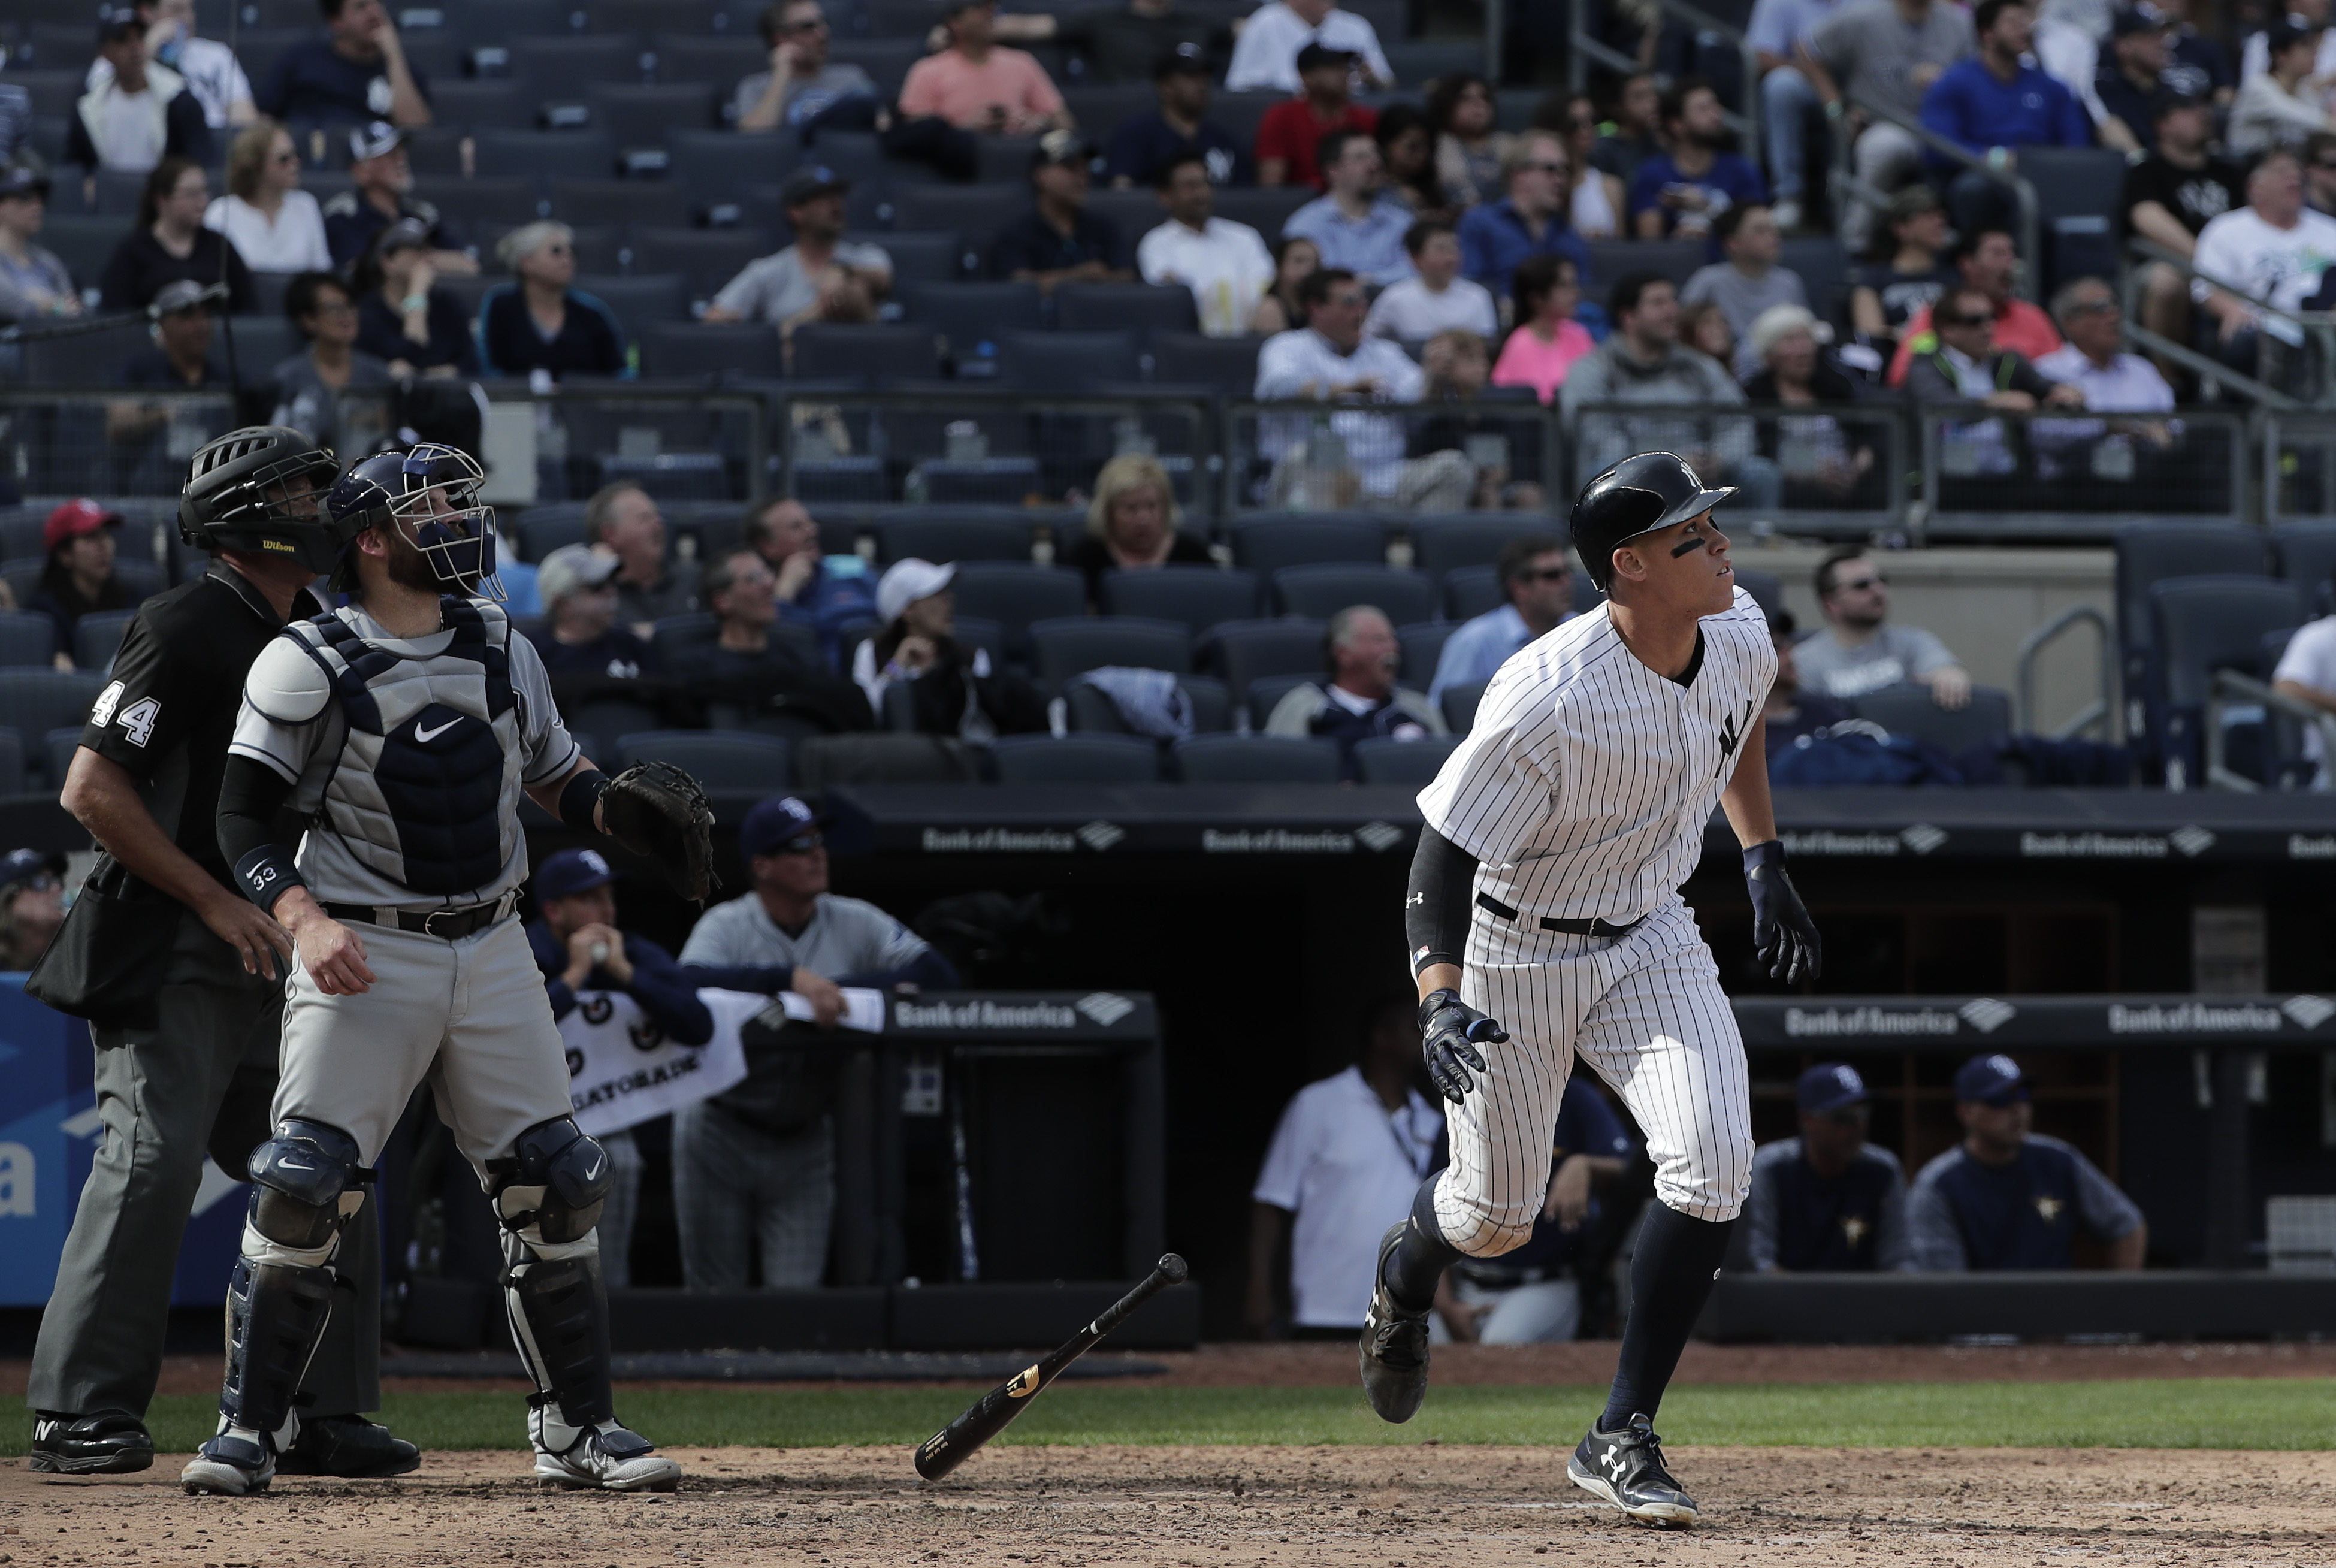 "<div class=""meta image-caption""><div class=""origin-logo origin-image ap""><span>AP</span></div><span class=""caption-text"">Aaron Judge leaves the batters box after connecting for a 435-foot home run against the Tampa Bay Rays Wednesday, April 12, 2017, in New York. (Julie Jacobson)</span></div>"